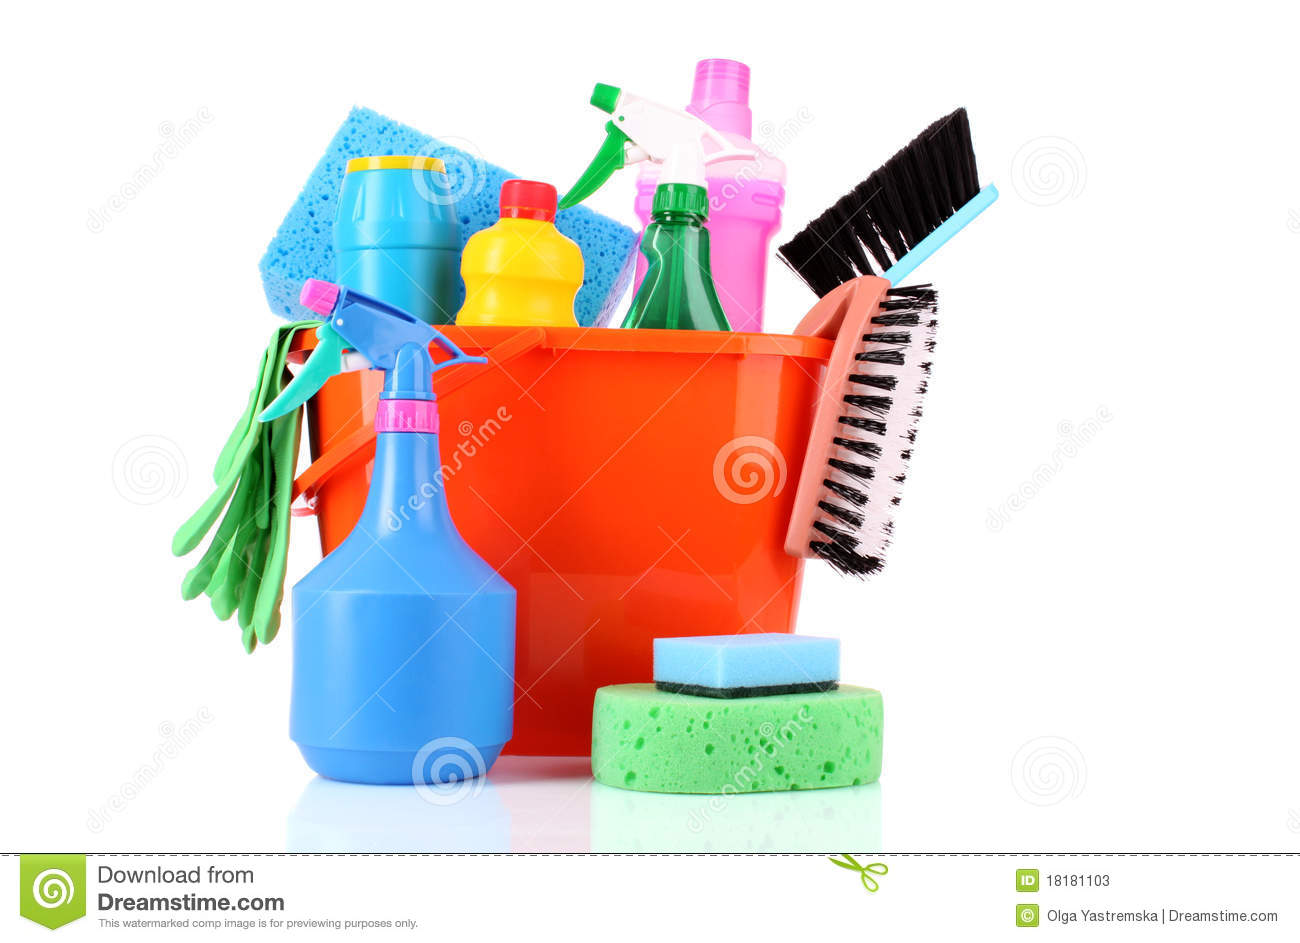 Stock Photos Bucket Cleaning Supplies Image18181103 also Cartoon Safety Signs further Stock Illustration Cartoon Lady Cleaner With A likewise Free Hotel Management Training in addition Office Health Tips. on office housekeeping cartoon